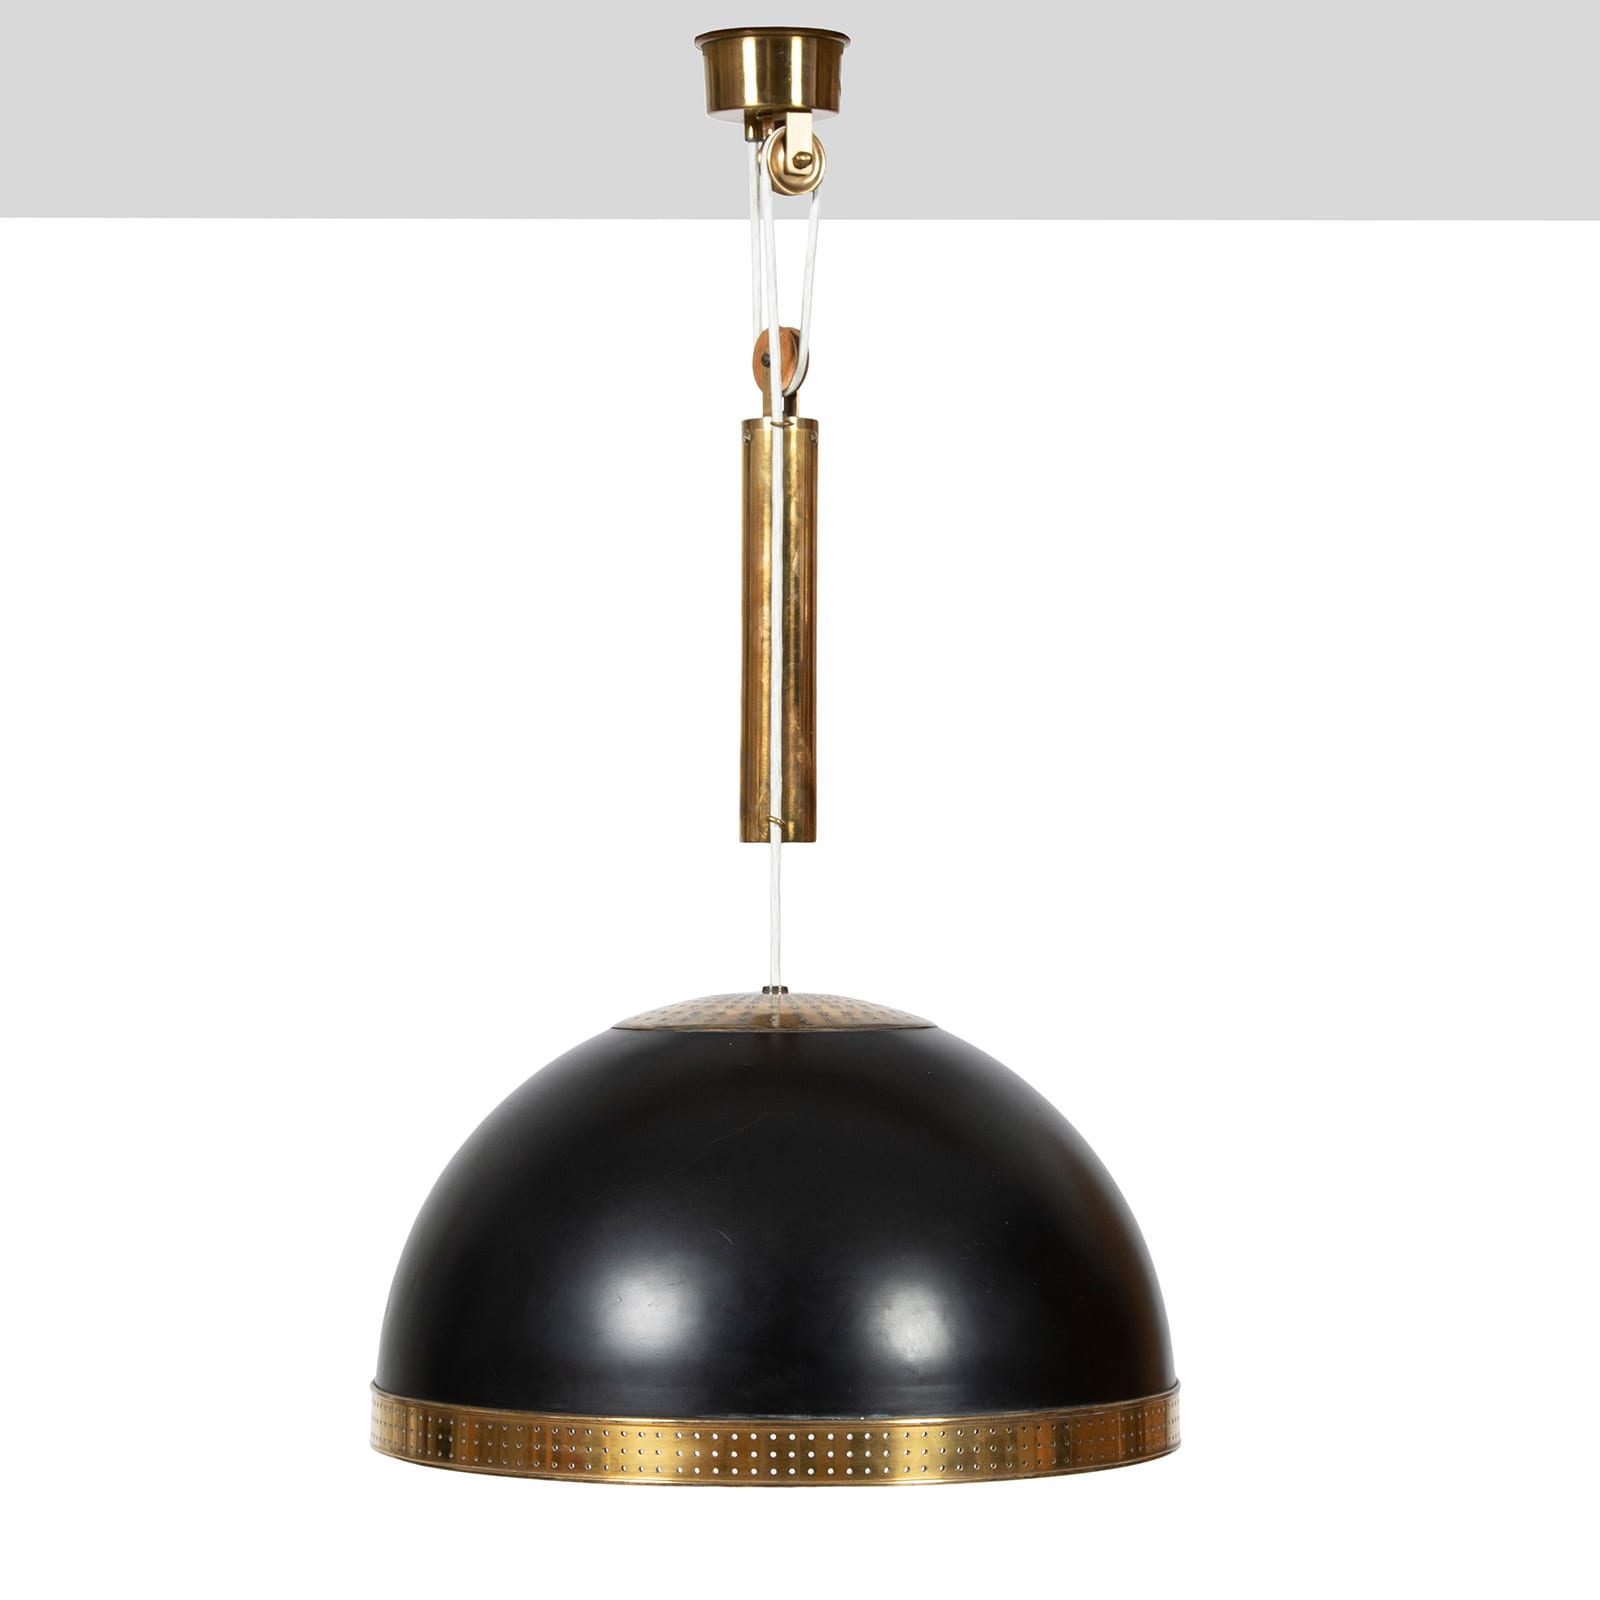 A large height adjustable pendant